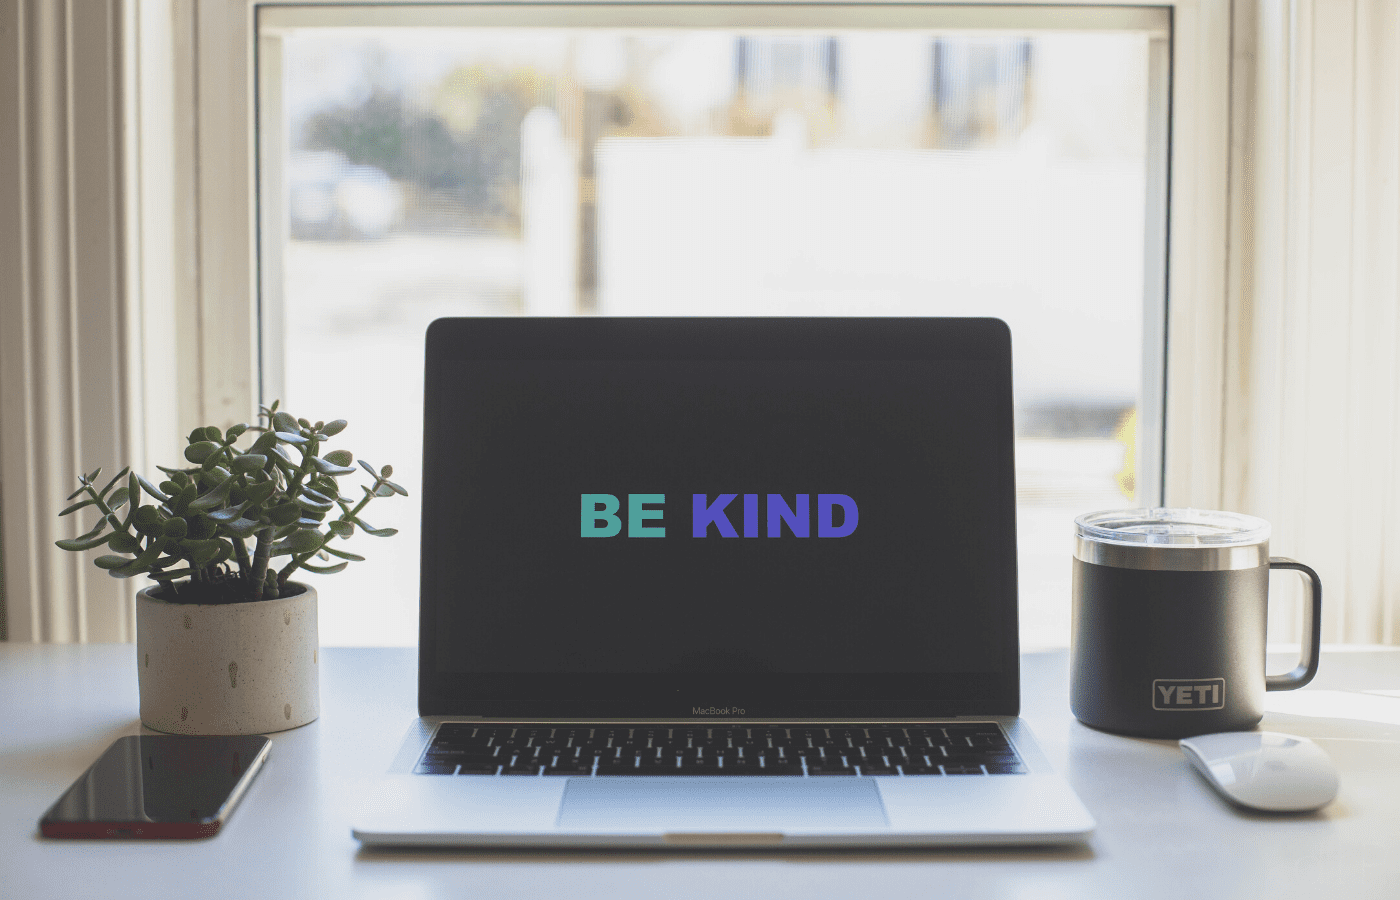 be kind words on laptop | inspiring stories covid-19